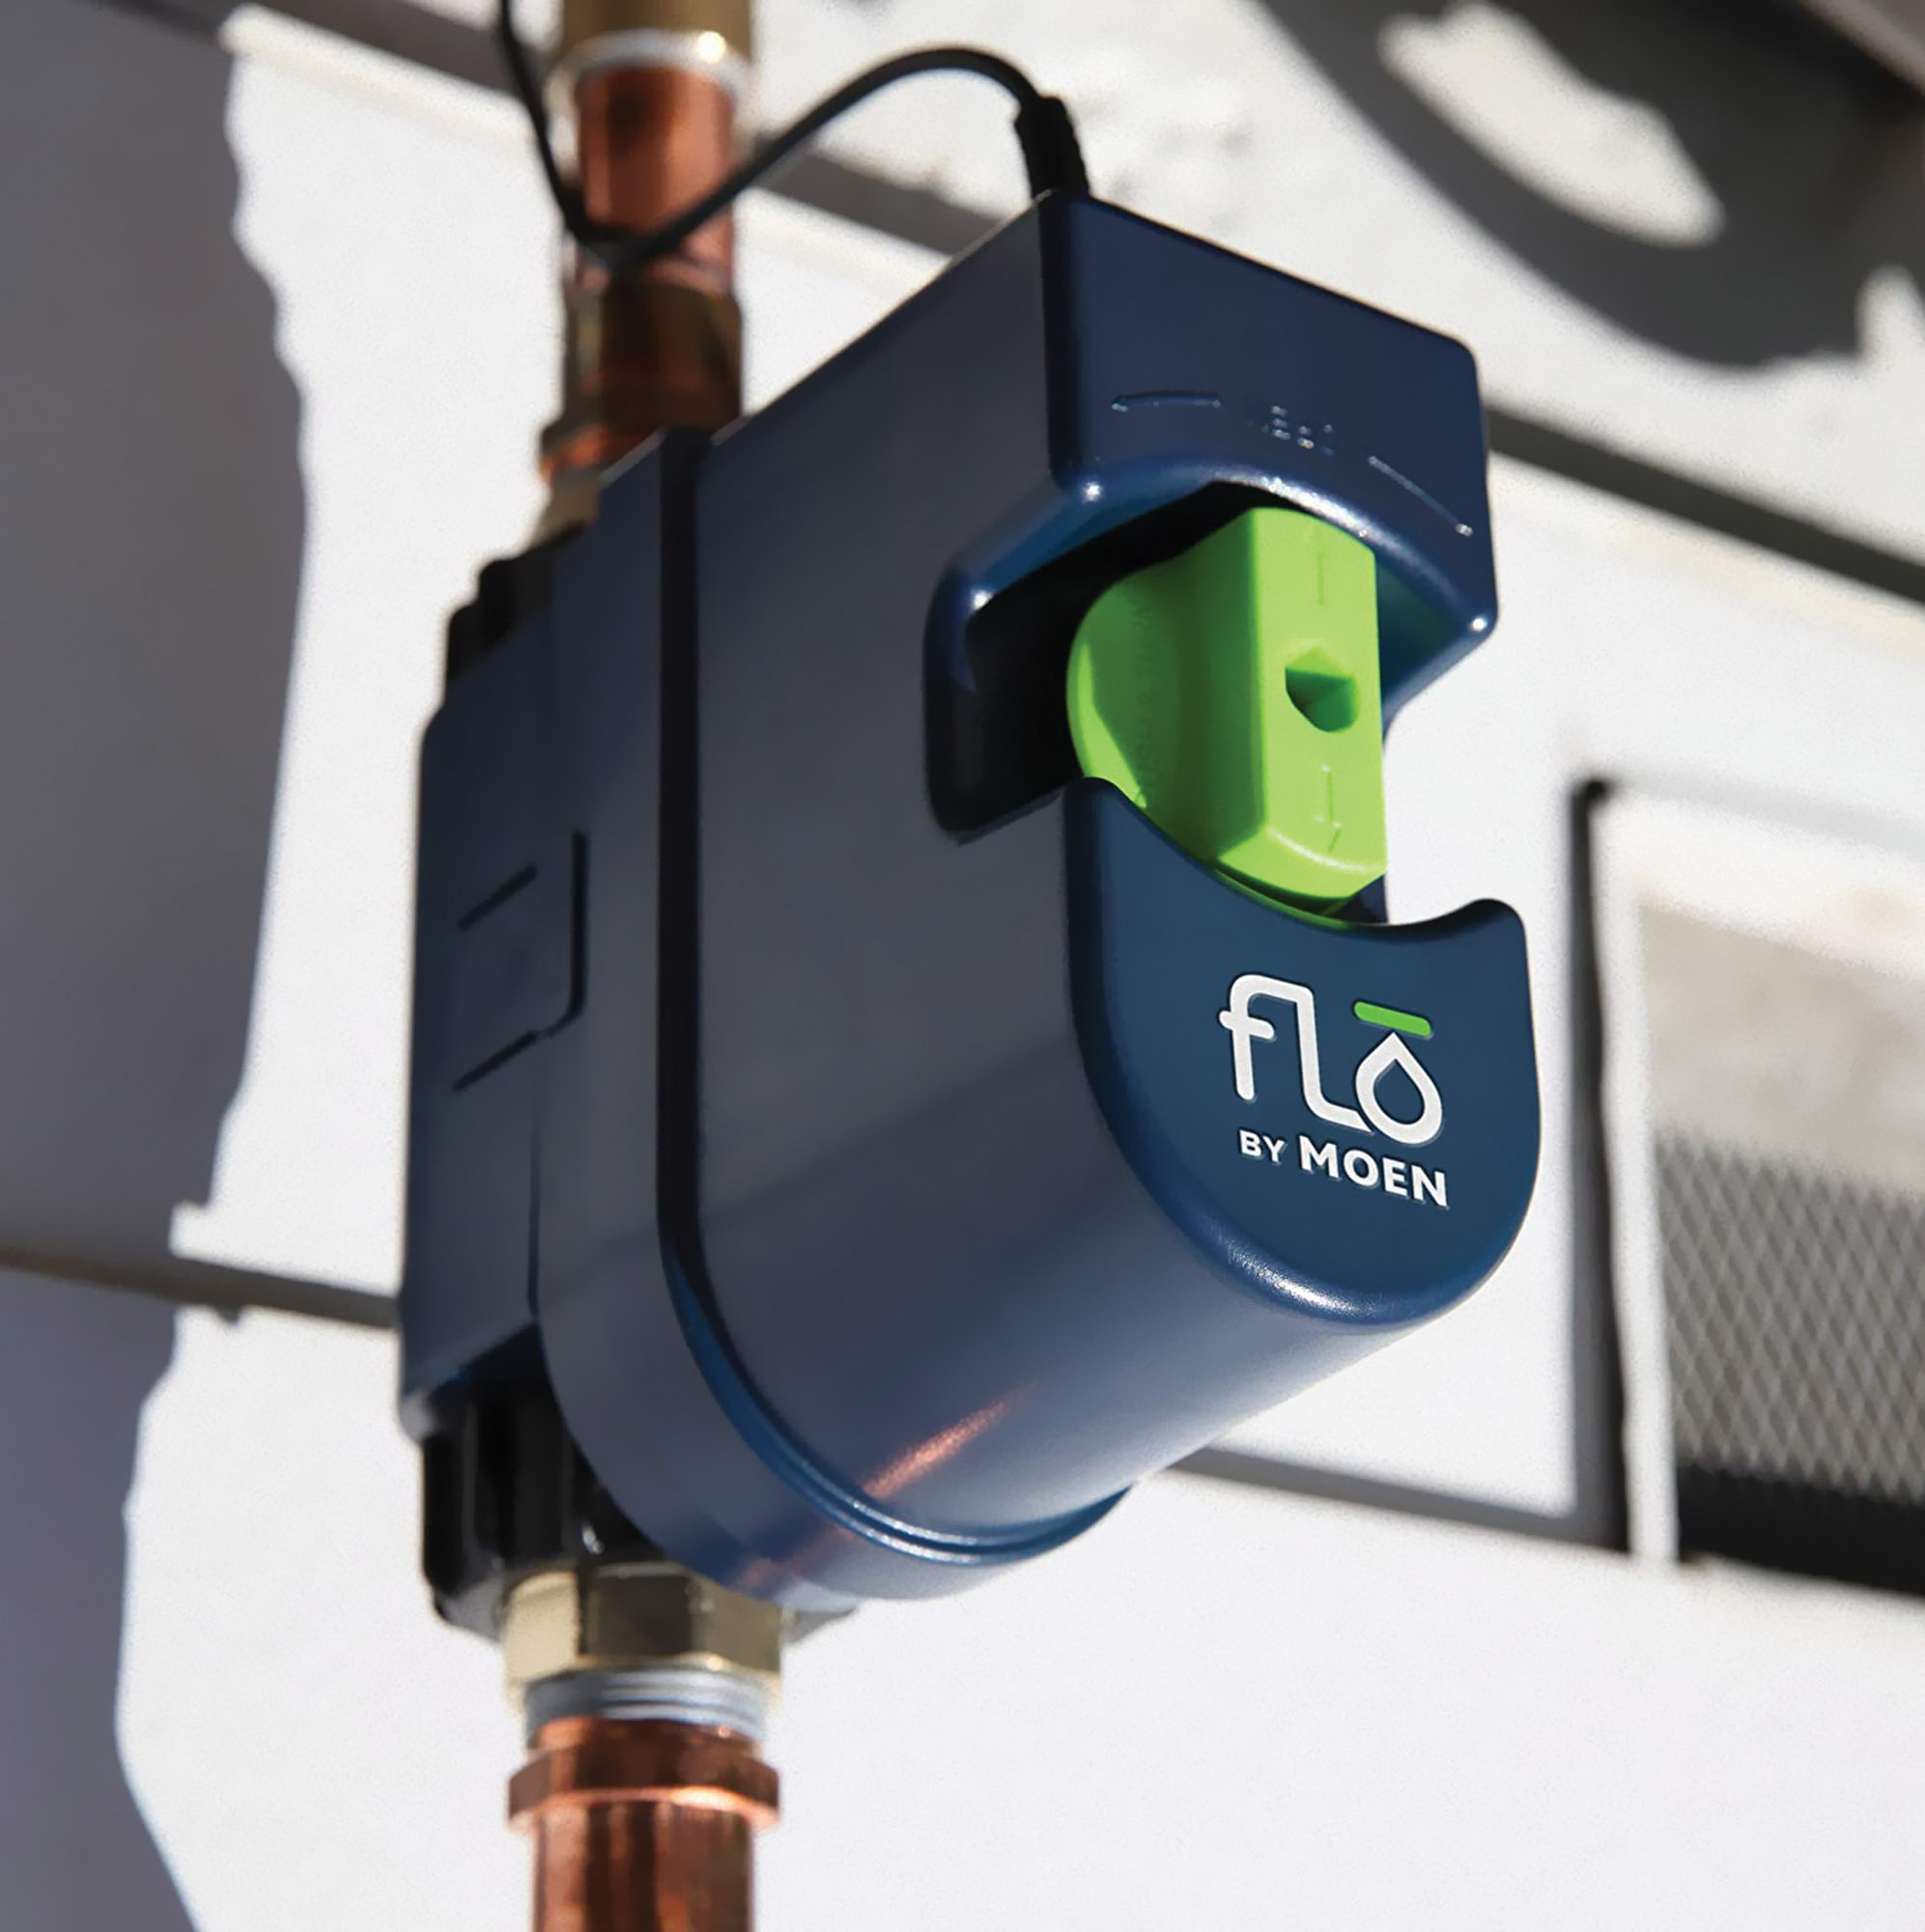 FLO monitors water leaks as little as a single drop per hour. The device also permits the user to  set conservation goals.